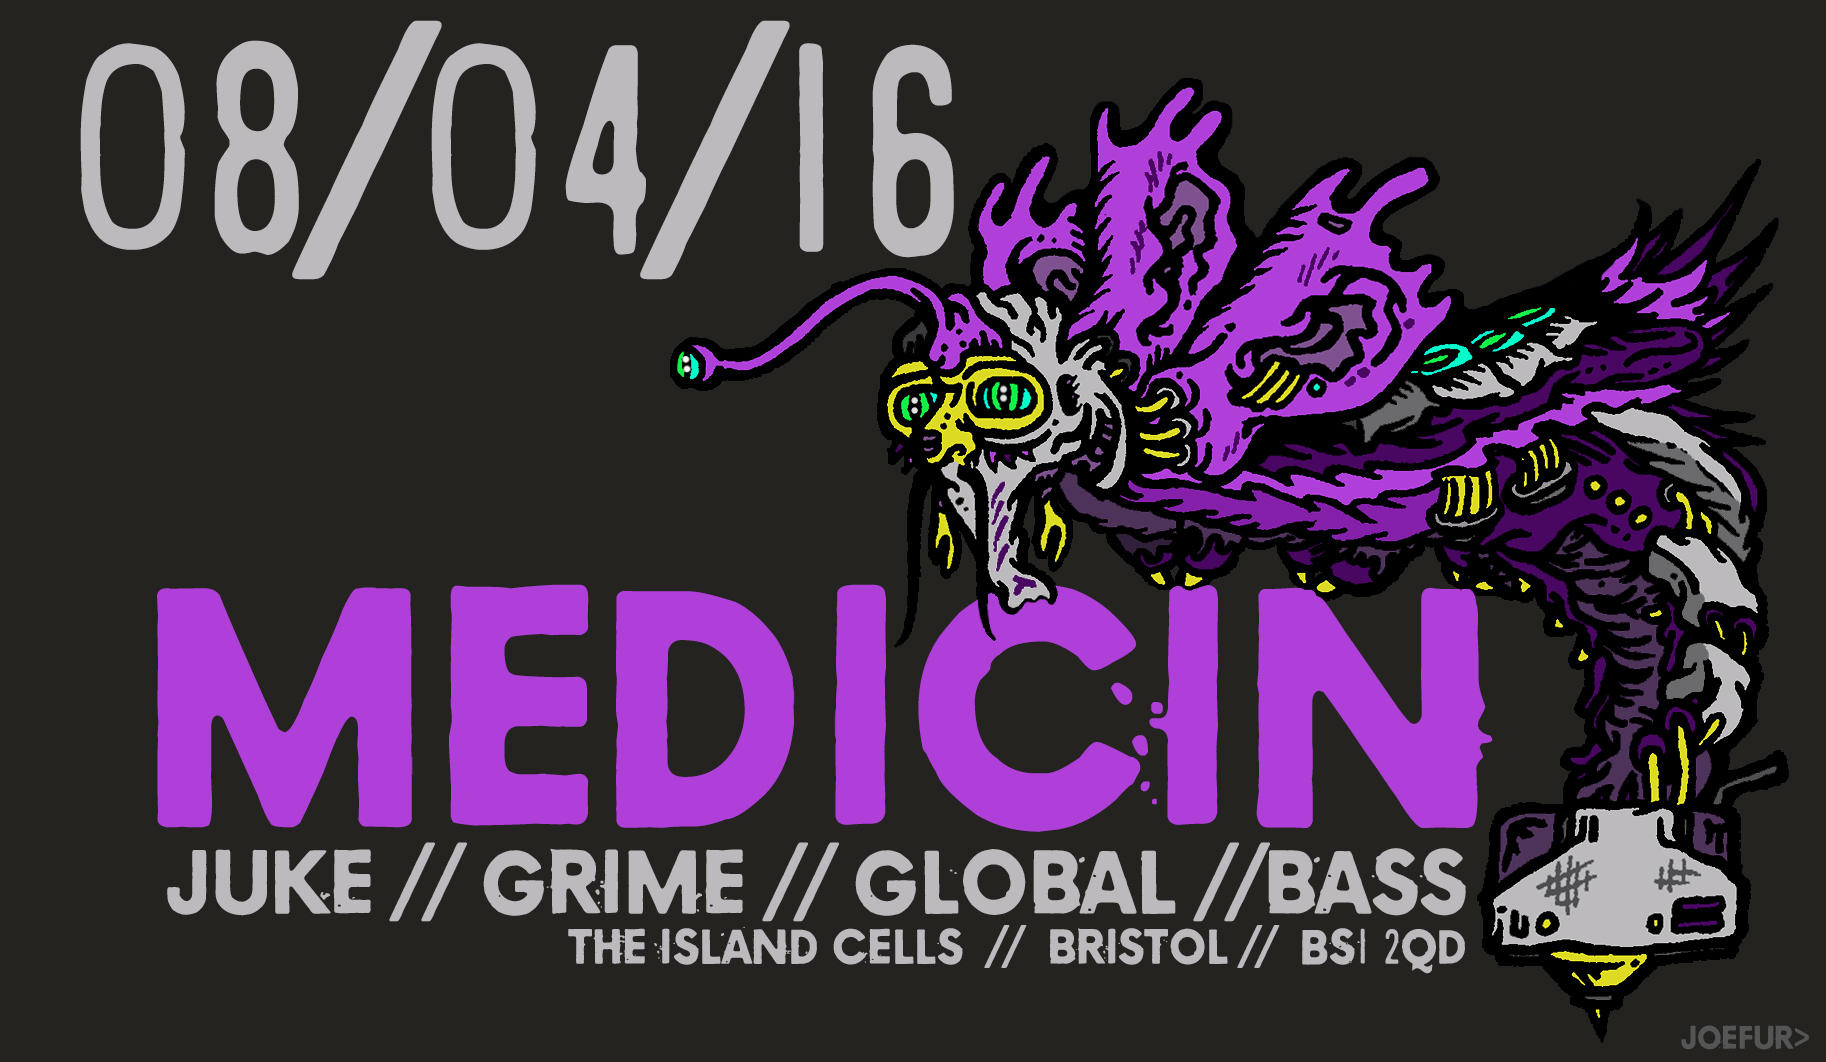 Medicin Promotional Artwork